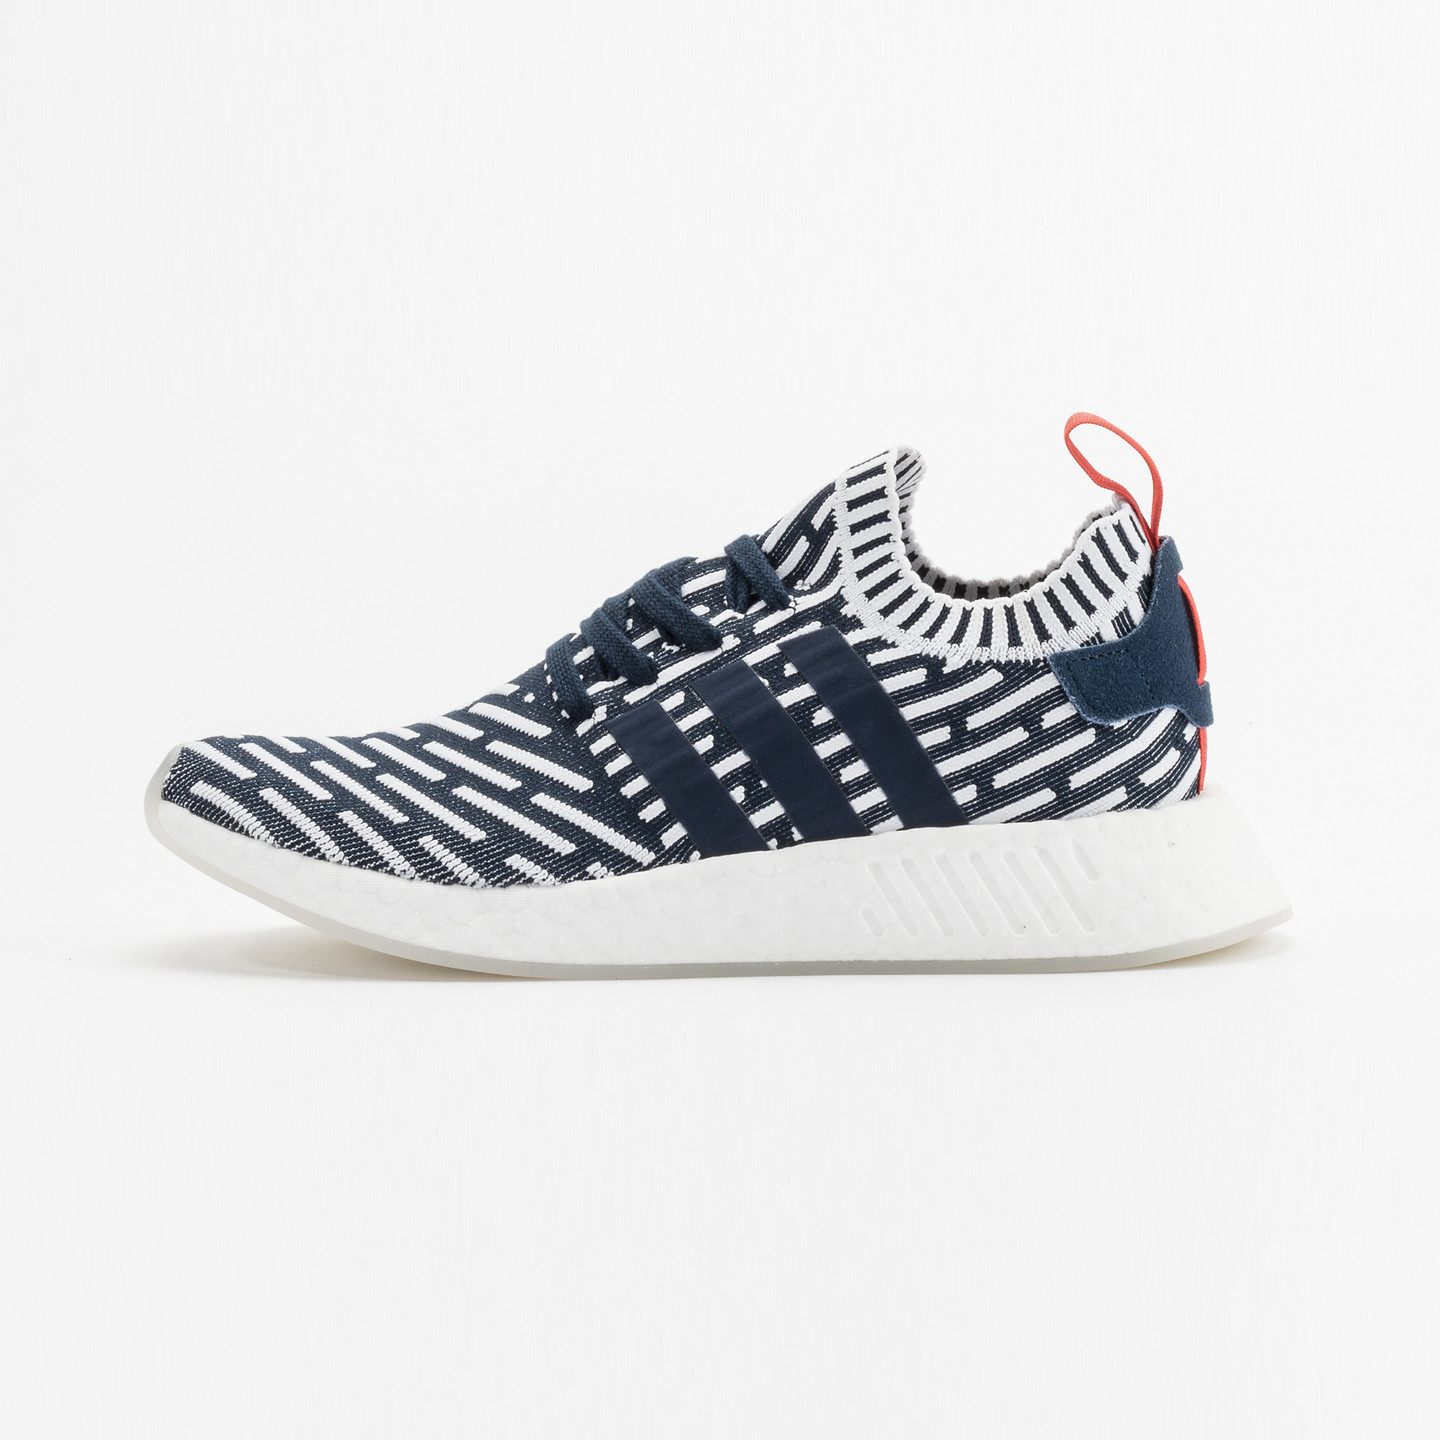 Adidas NMD R2 PK Collegiate Navy / White BB2909-44.66